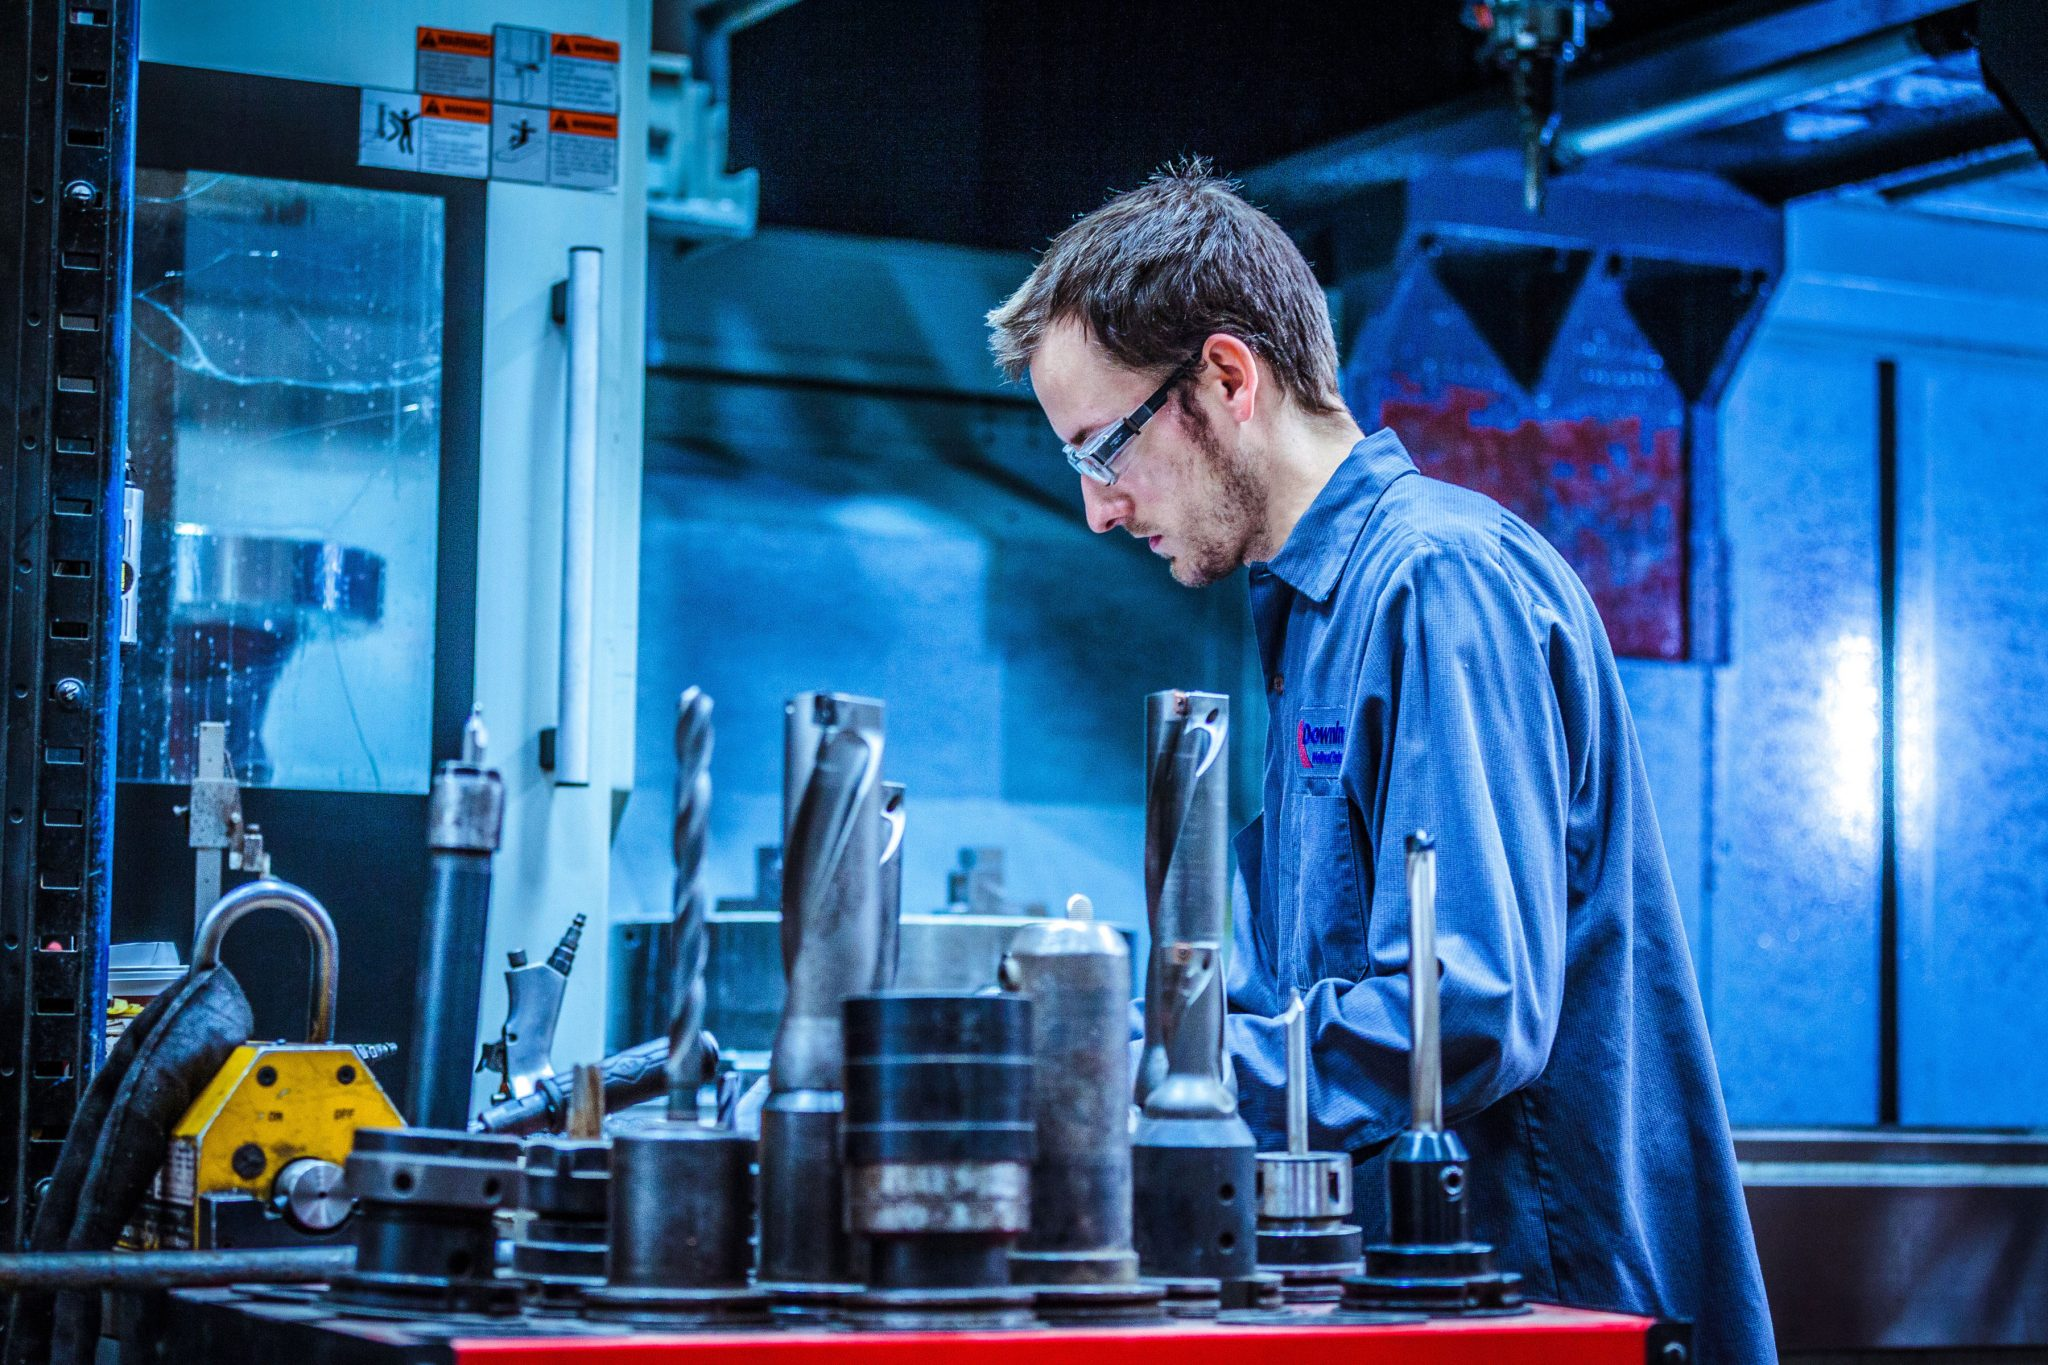 A Downing employee works on equipment in a manufacturing facility.